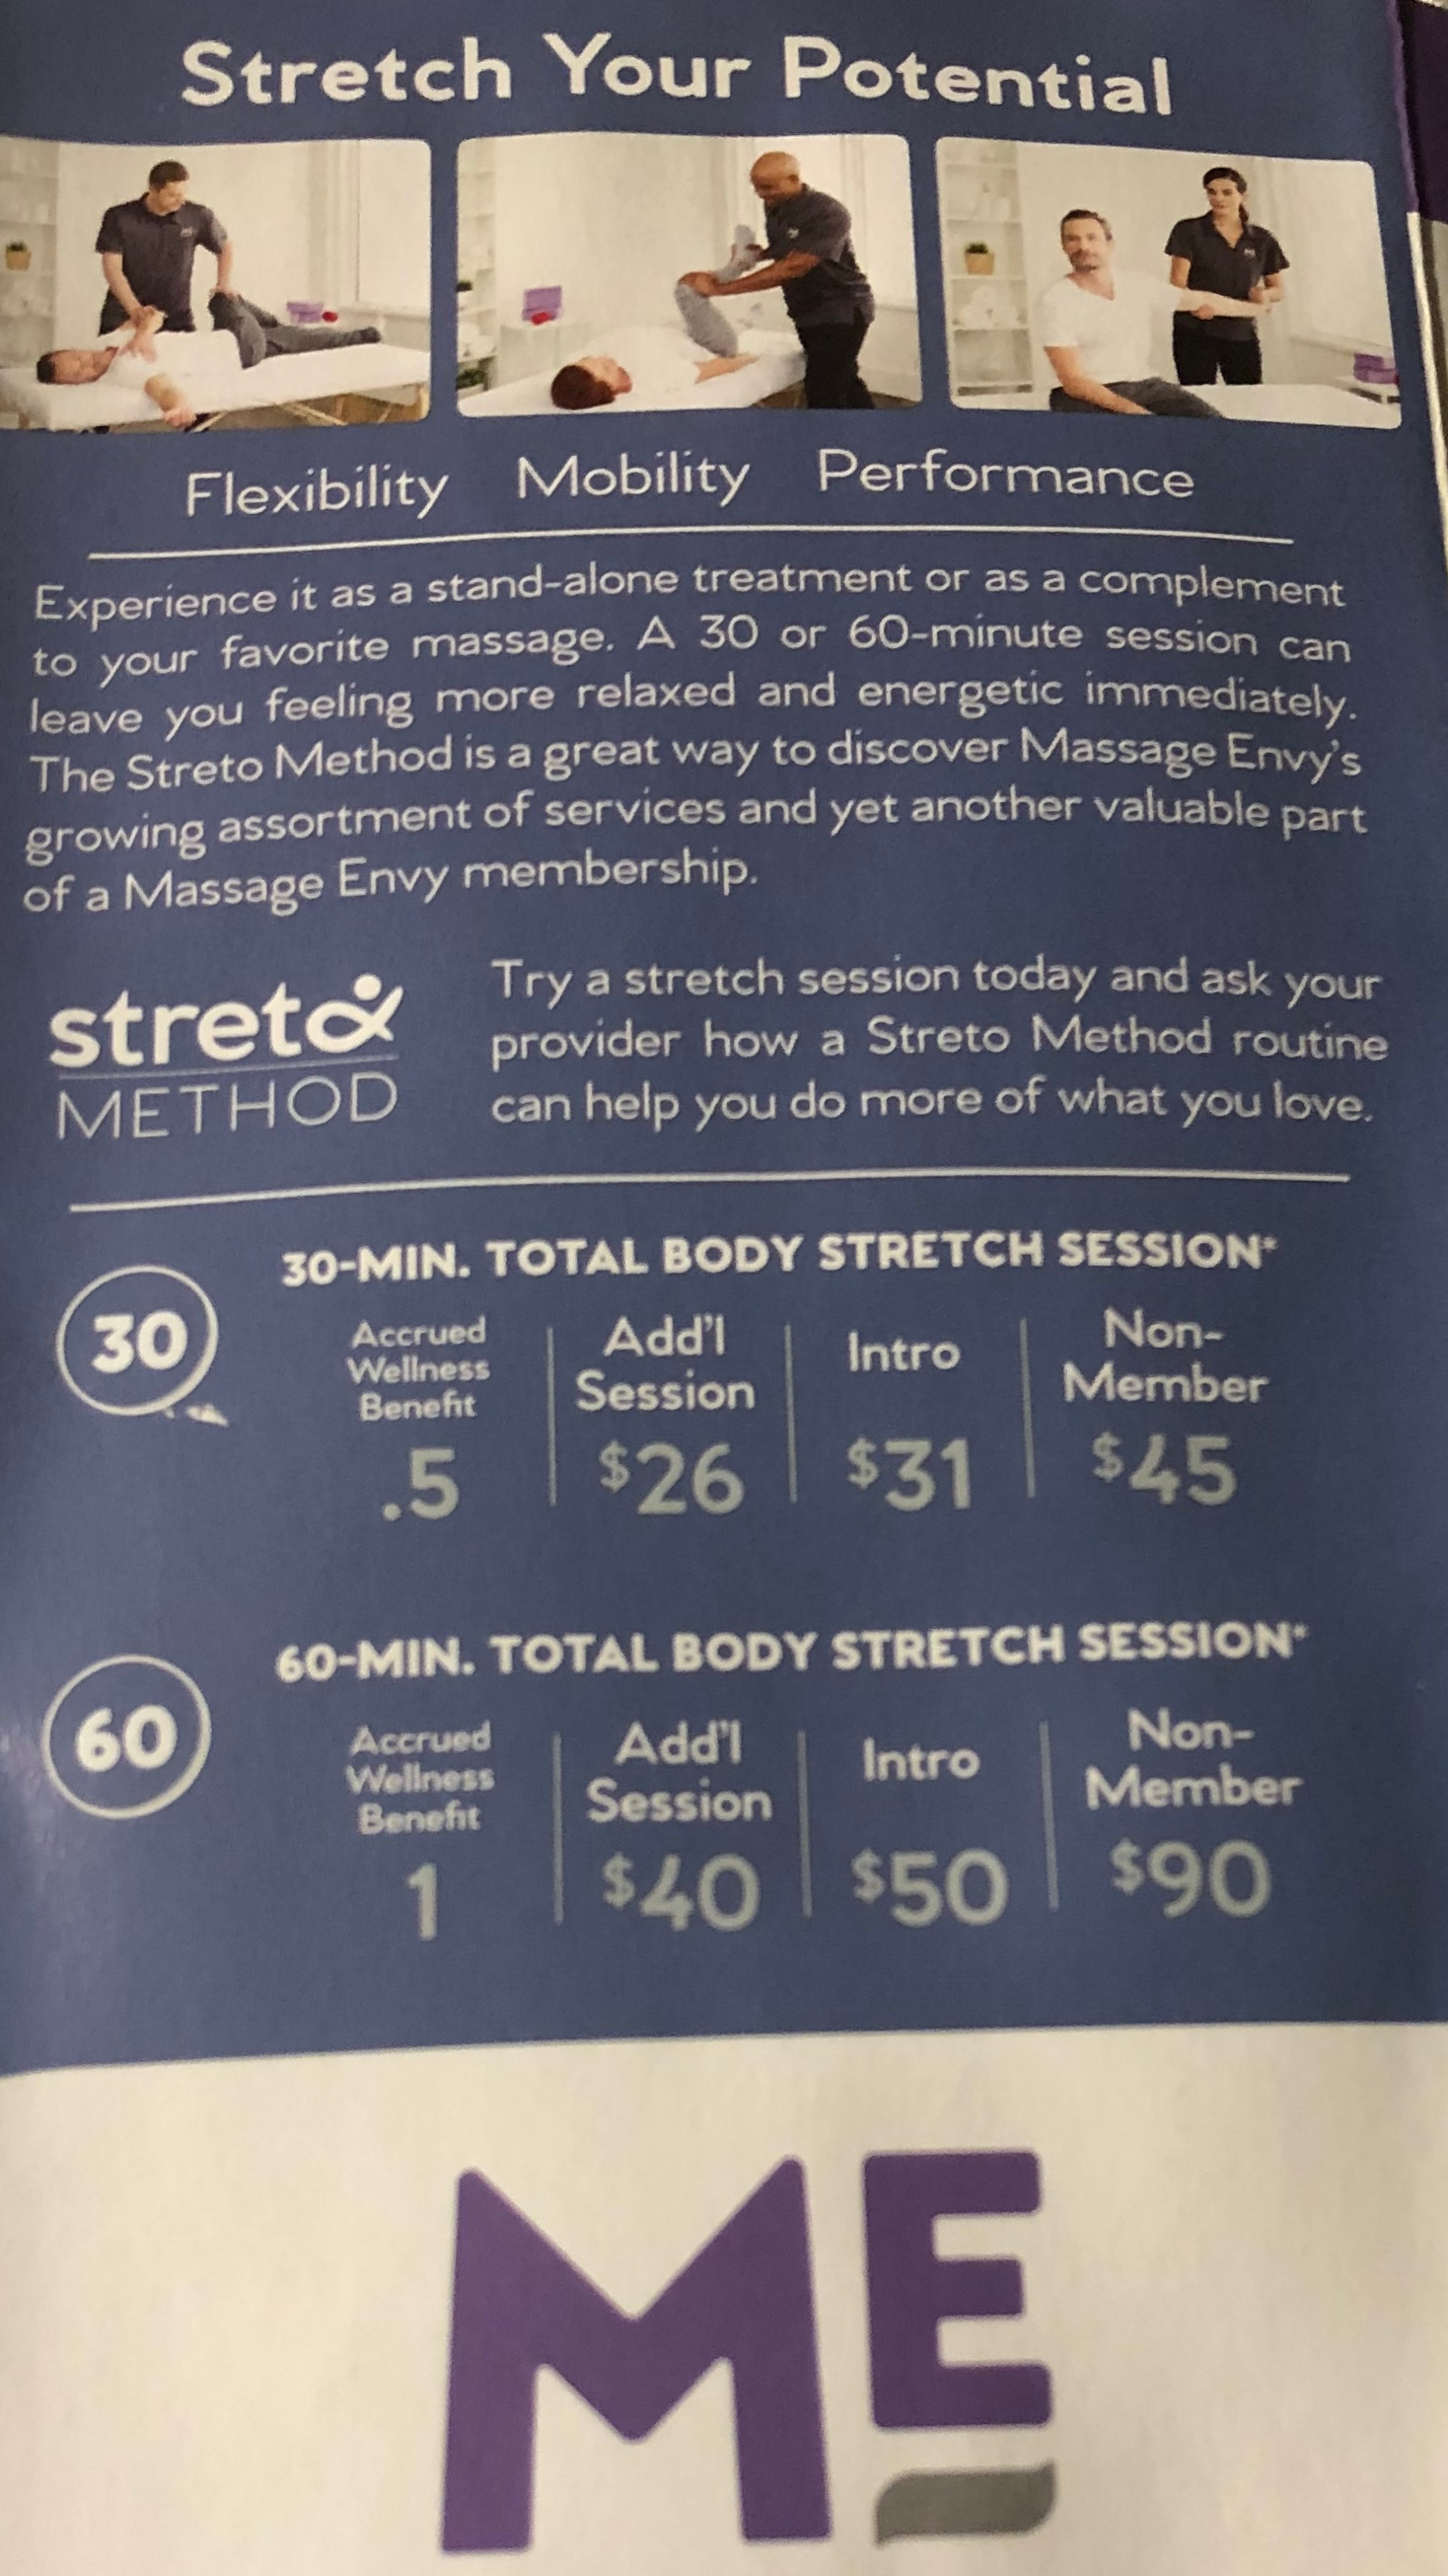 Stretch options available